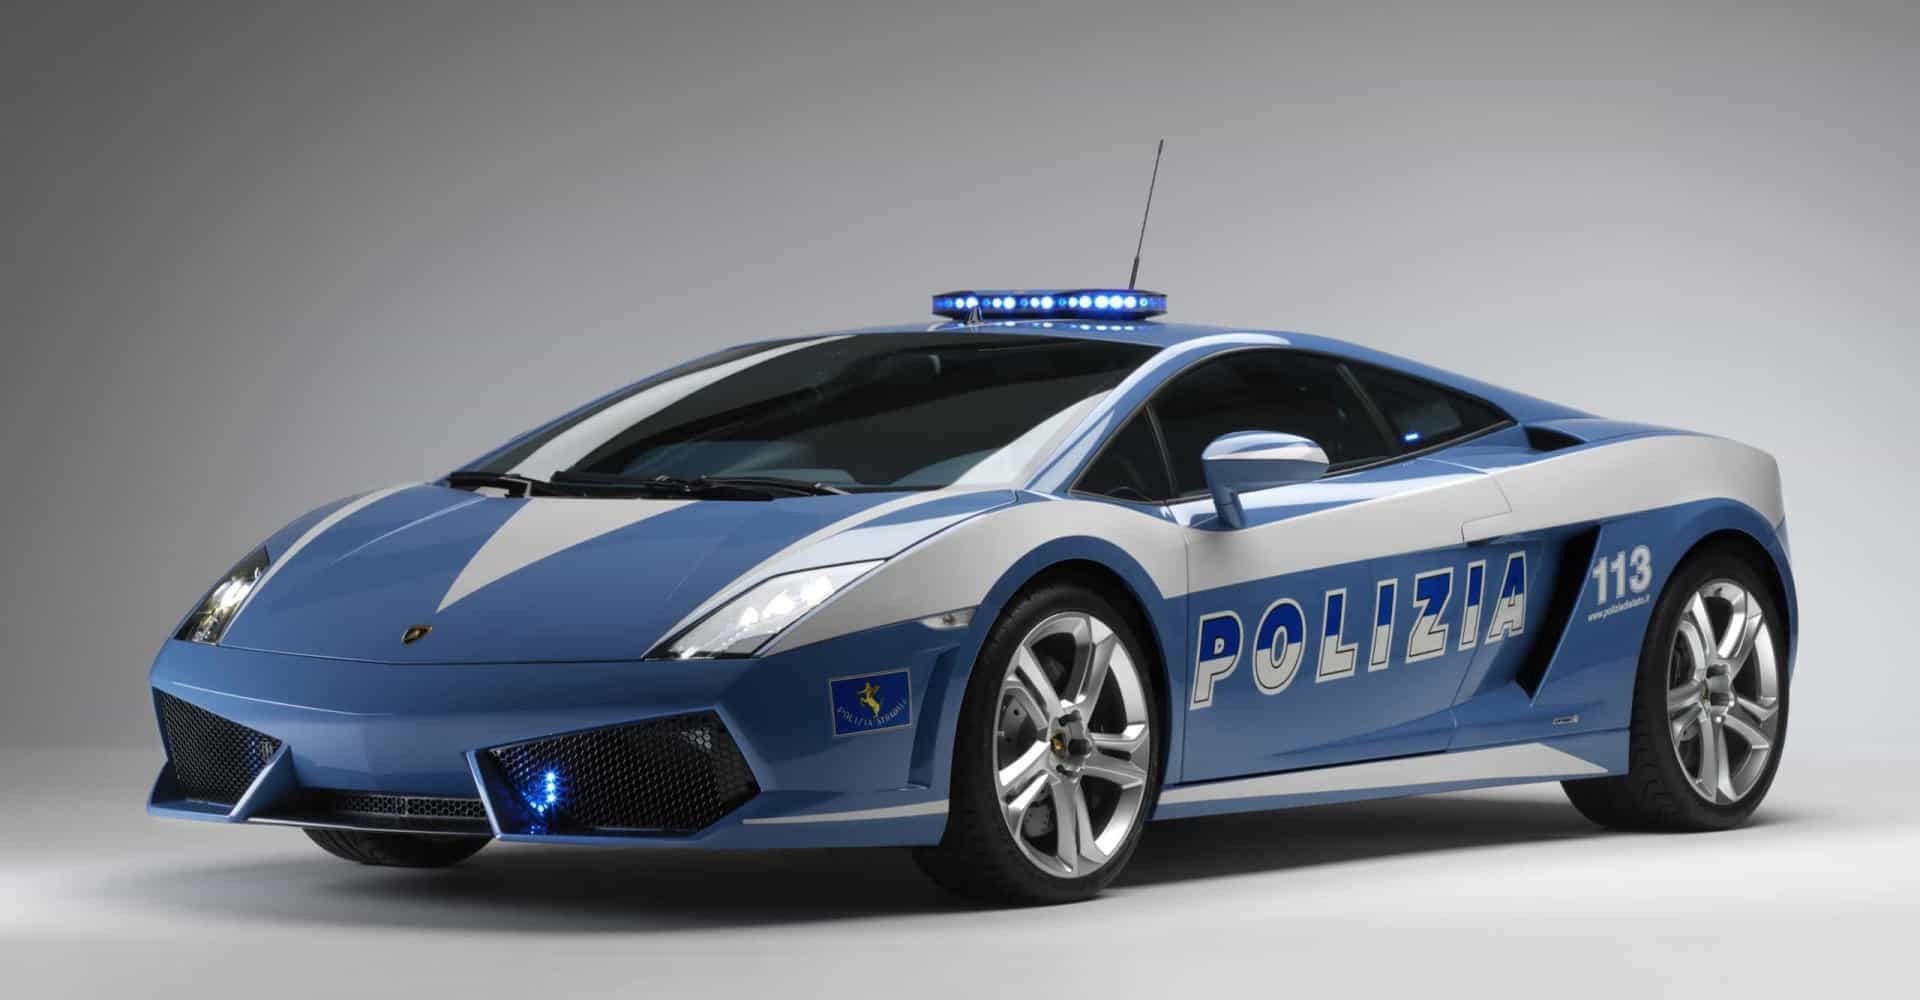 The world's fastest (and most expensive) police cars